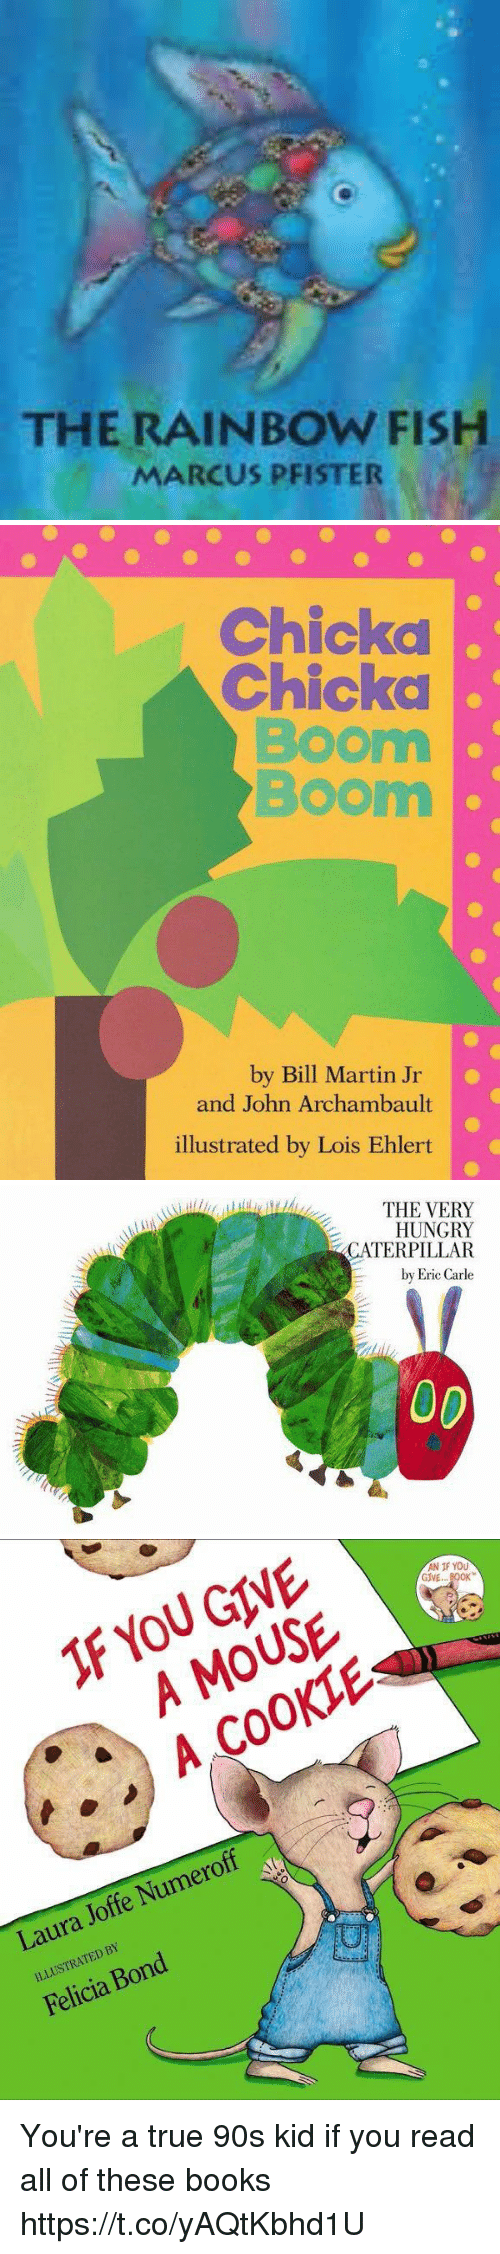 chicka: THE RAINBOW FISH  MARCUS PFISTER   Chickd  Chicka  Boom  Boom  by Bill Martin Jr  and John Archambault  illustrated by Lois Ehlert   THE VERY  HUNGRY  CATERPILLAR  by Eric Carle   F YOU GIVE  A MOUSE  A COOKIE  AN IF YOU  GIVE... BOK  Laura Joffe Numeroff  ILLUSTRATED BY  Felicia Bond You're a true 90s kid if you read all of these books https://t.co/yAQtKbhd1U